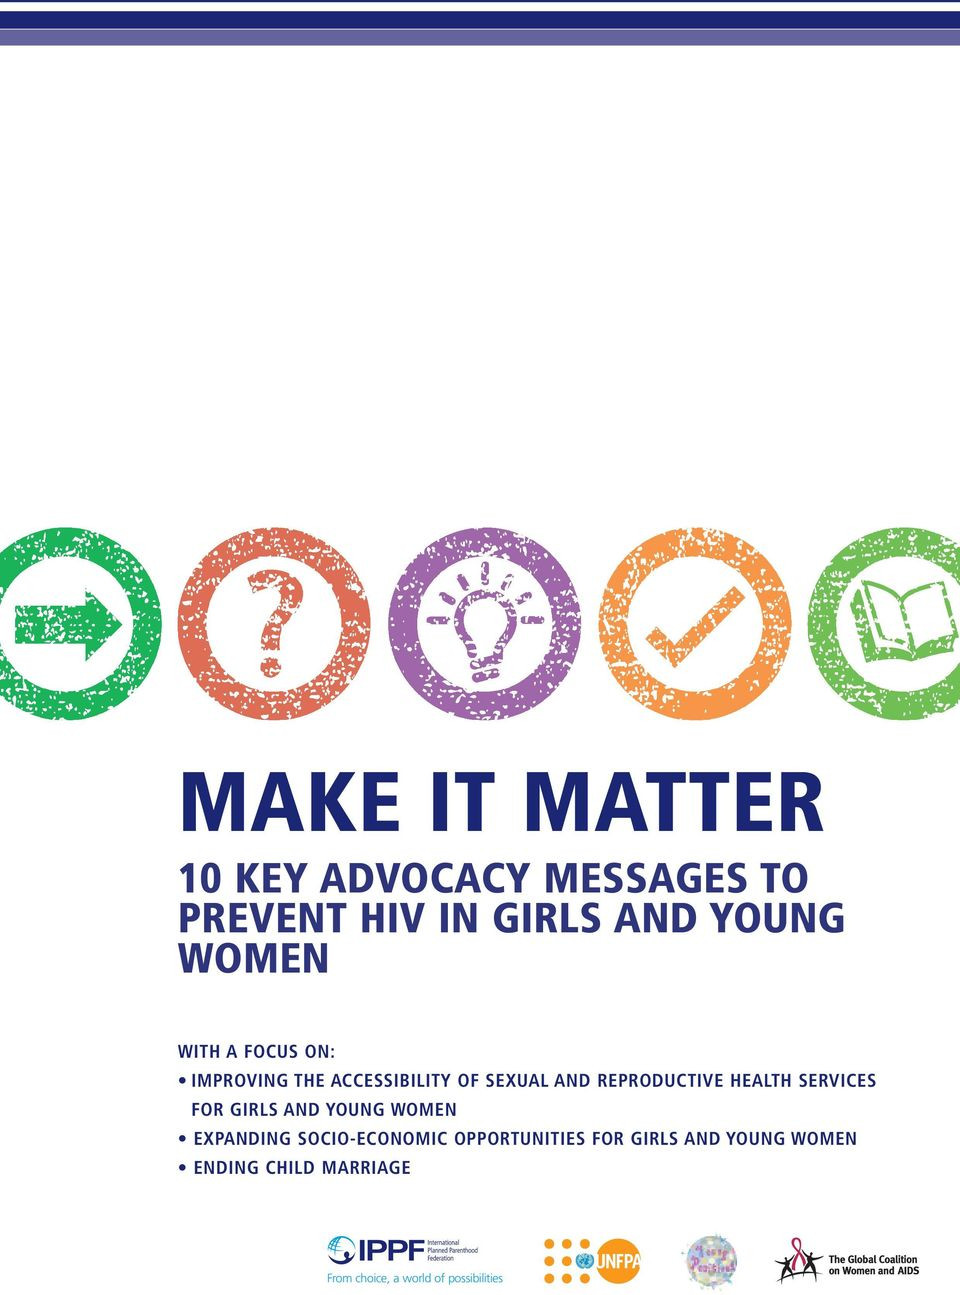 SERVICES FOR GIRLS AND YOUNG WOMEN EXPANDING SOCIO-ECONOMIC OPPORTUNITIES FOR